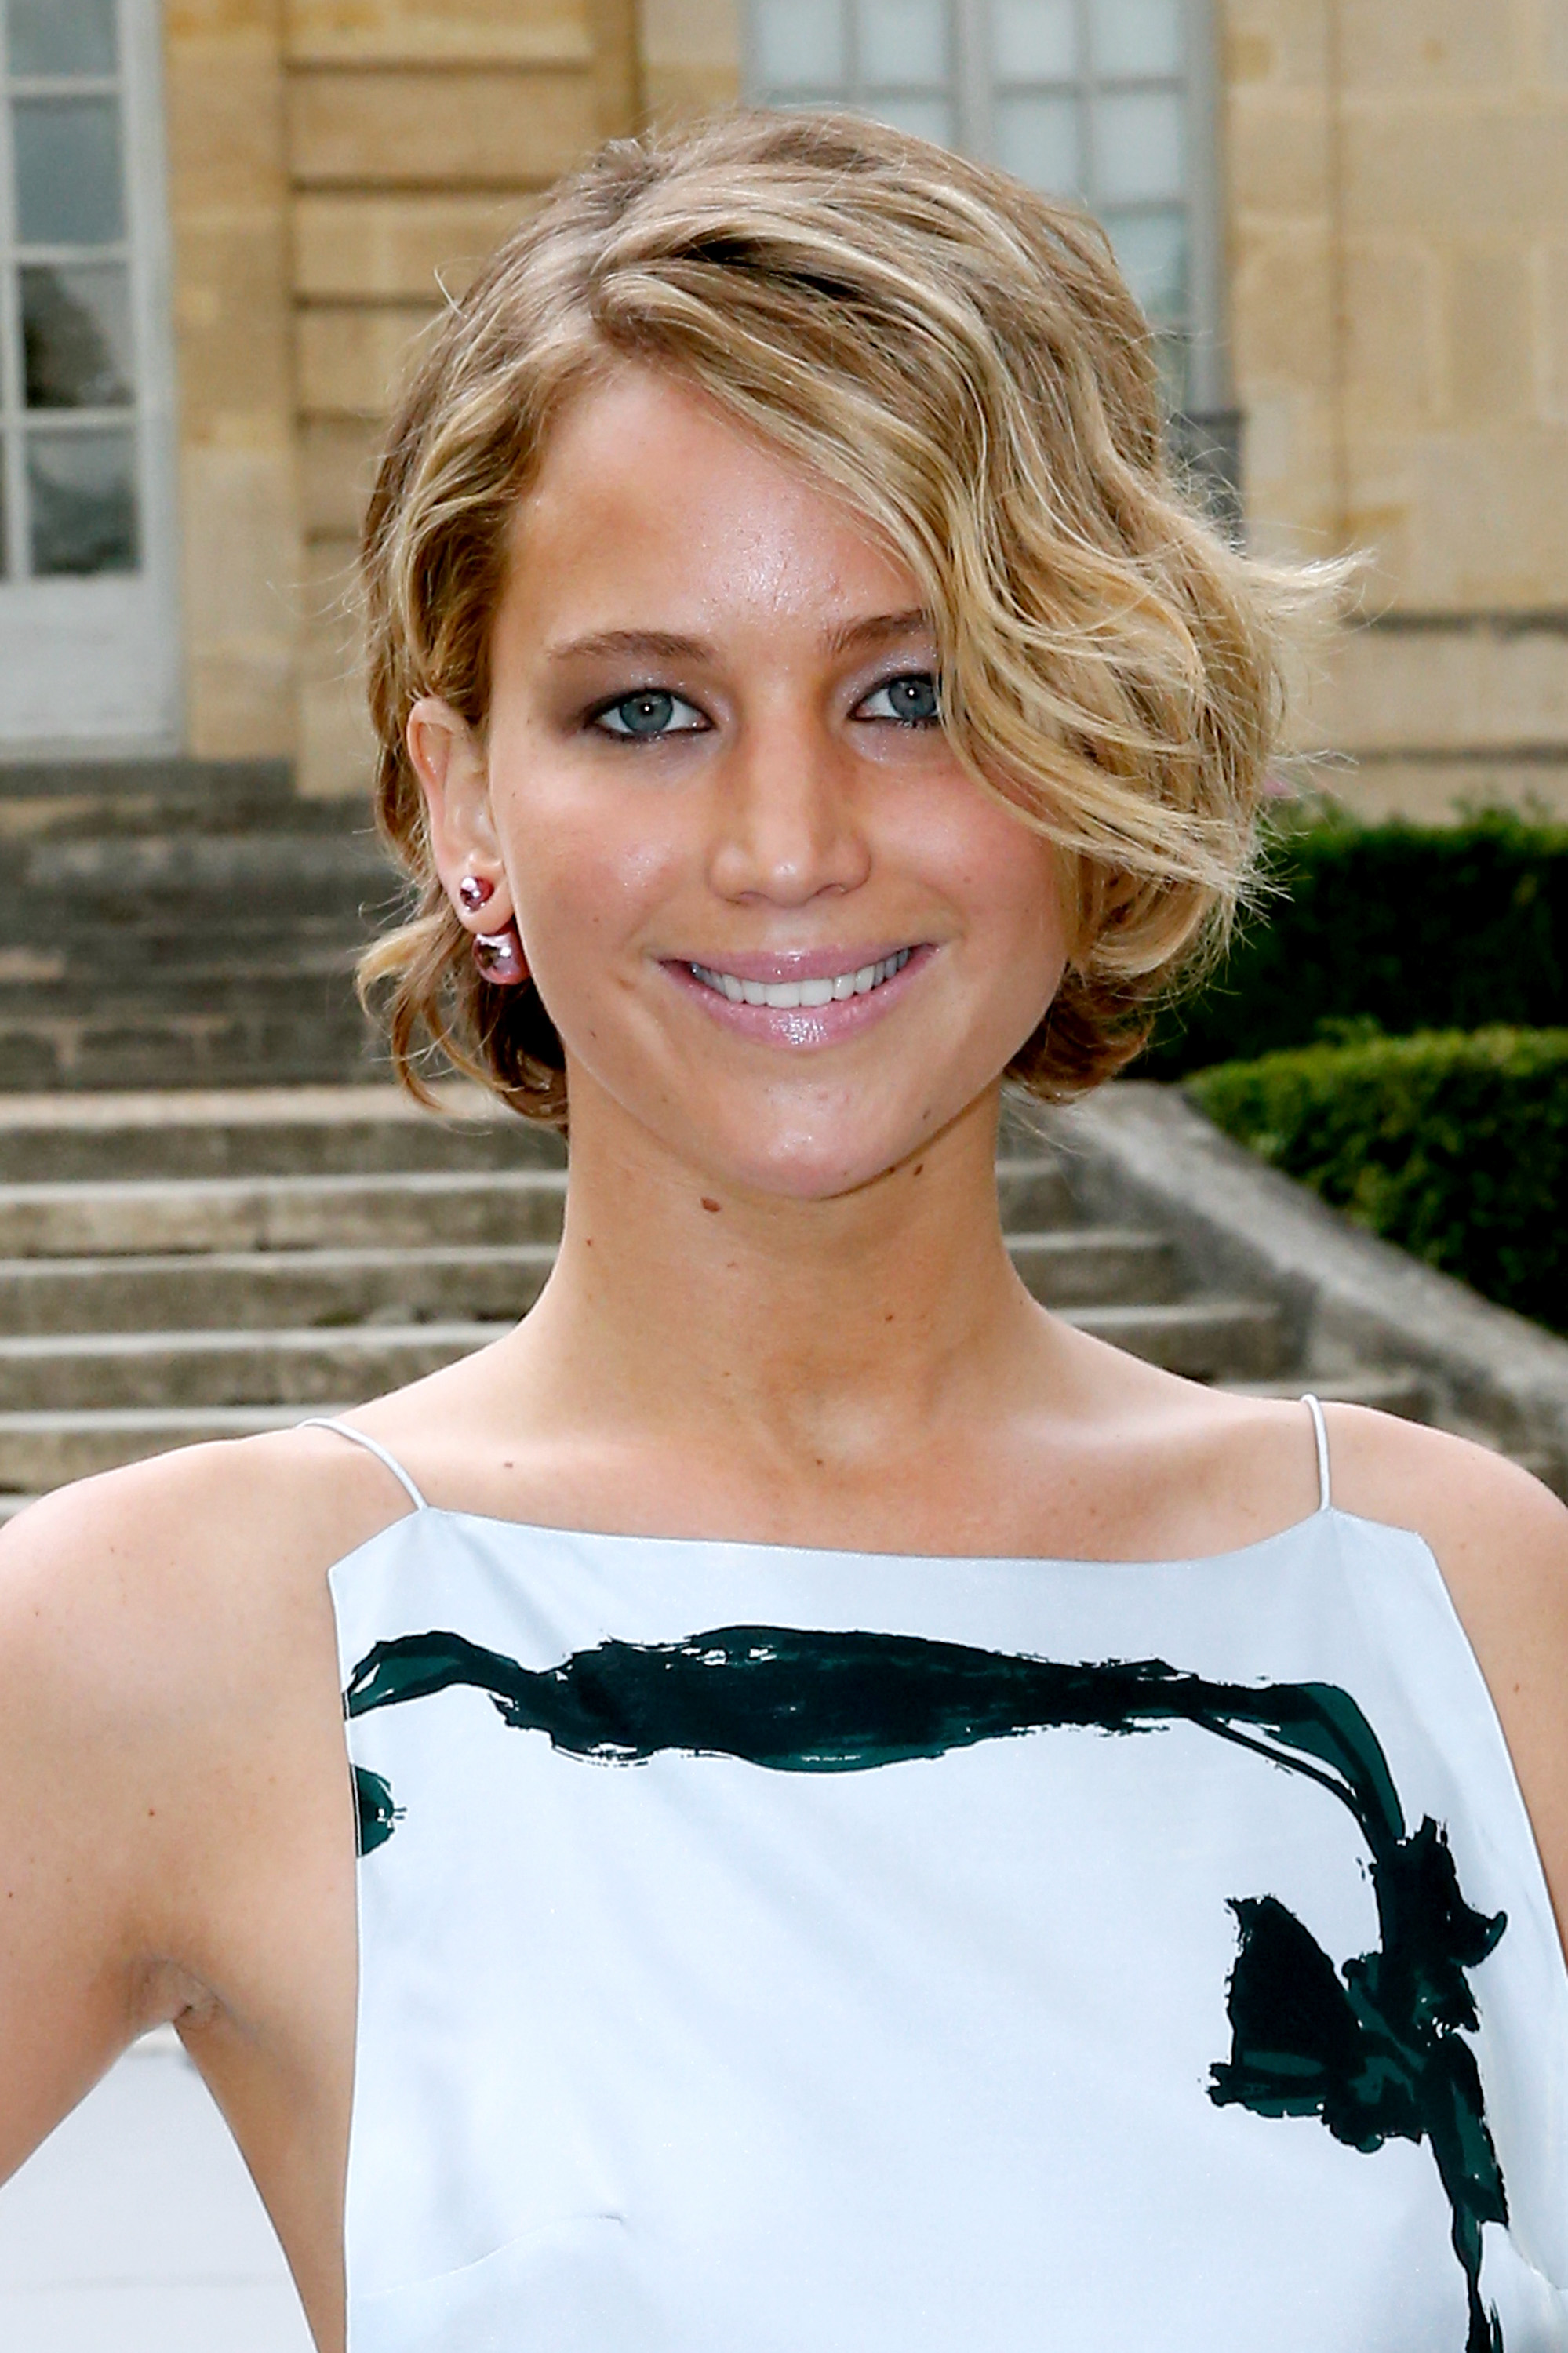 Actress Jennifer Lawrence attends the Christian Dior show as part of Paris Fashion Week - Haute Couture Fall/Winter 2014-2015.